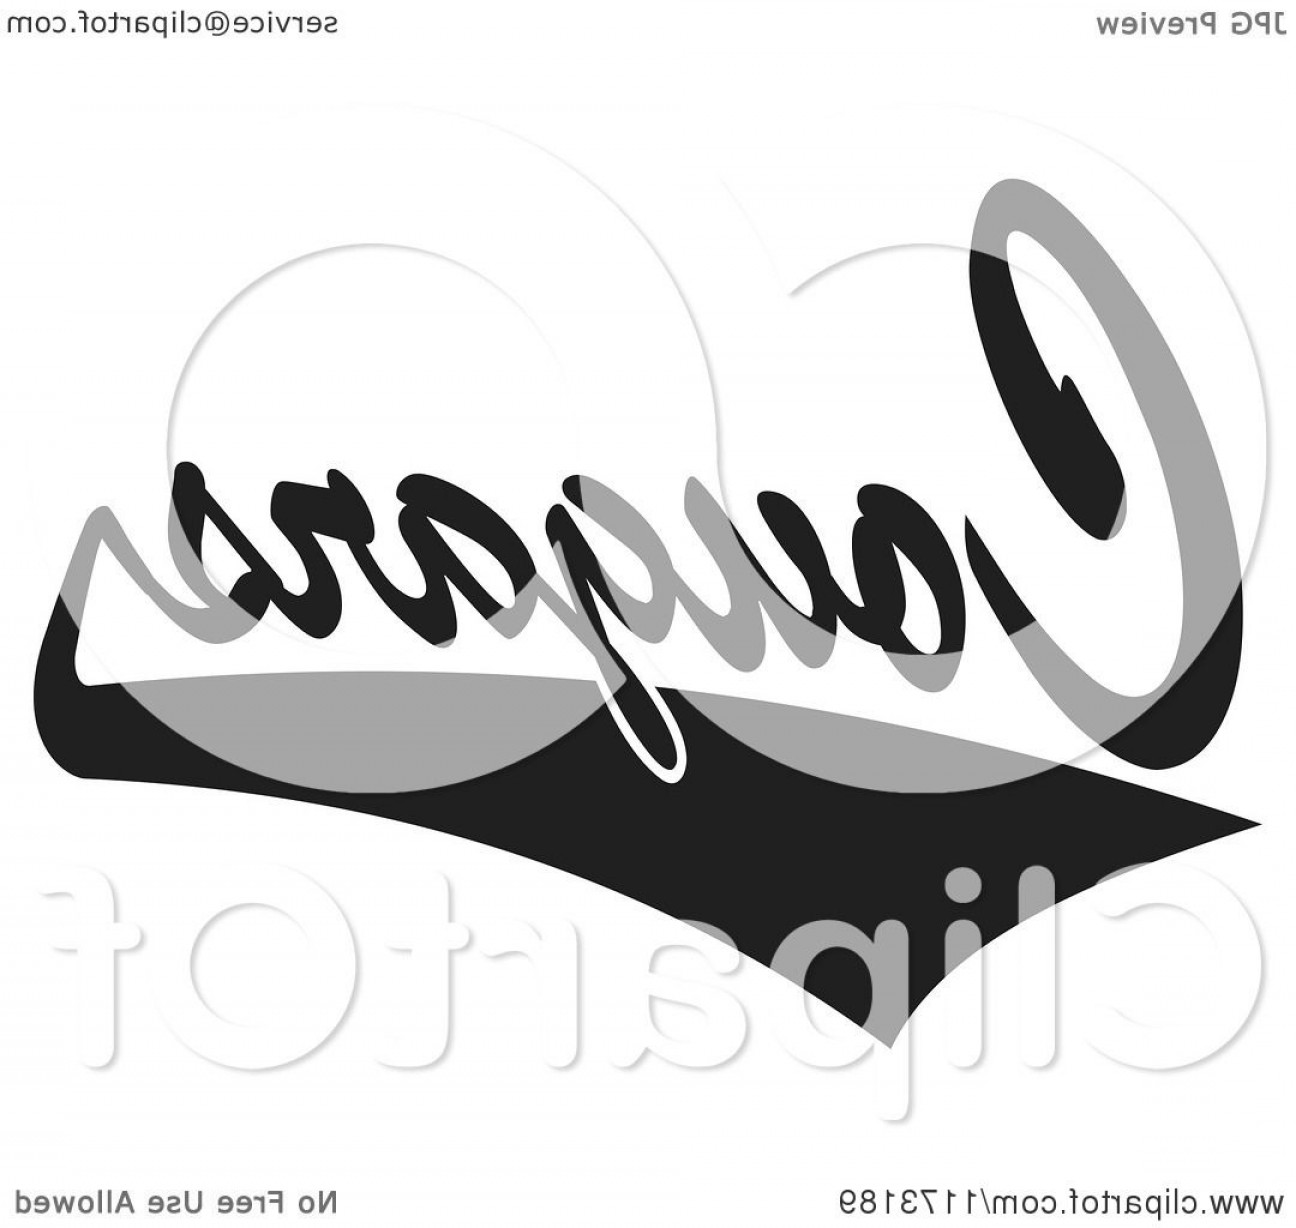 Cougar Logo Vector: Black And White Tailsweep And Cougars Sports Team Text